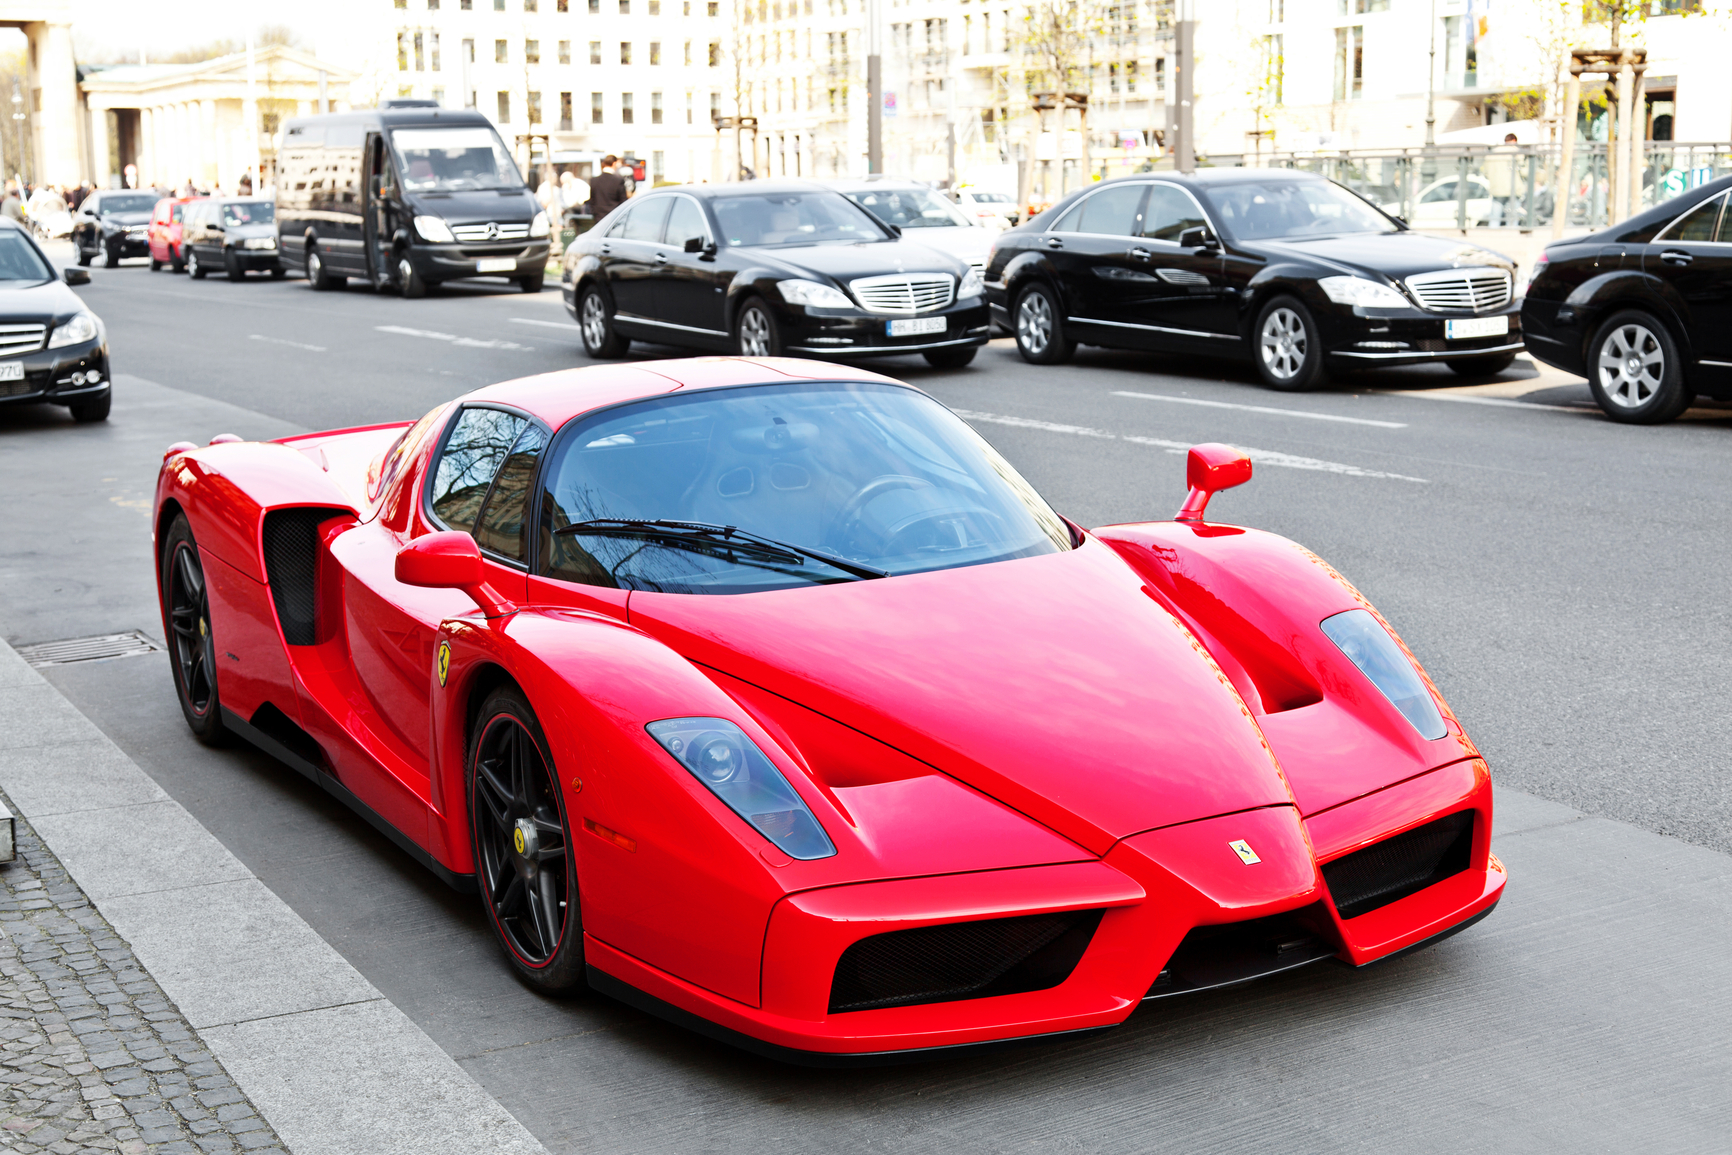 ferrari enzo photos informations articles. Black Bedroom Furniture Sets. Home Design Ideas